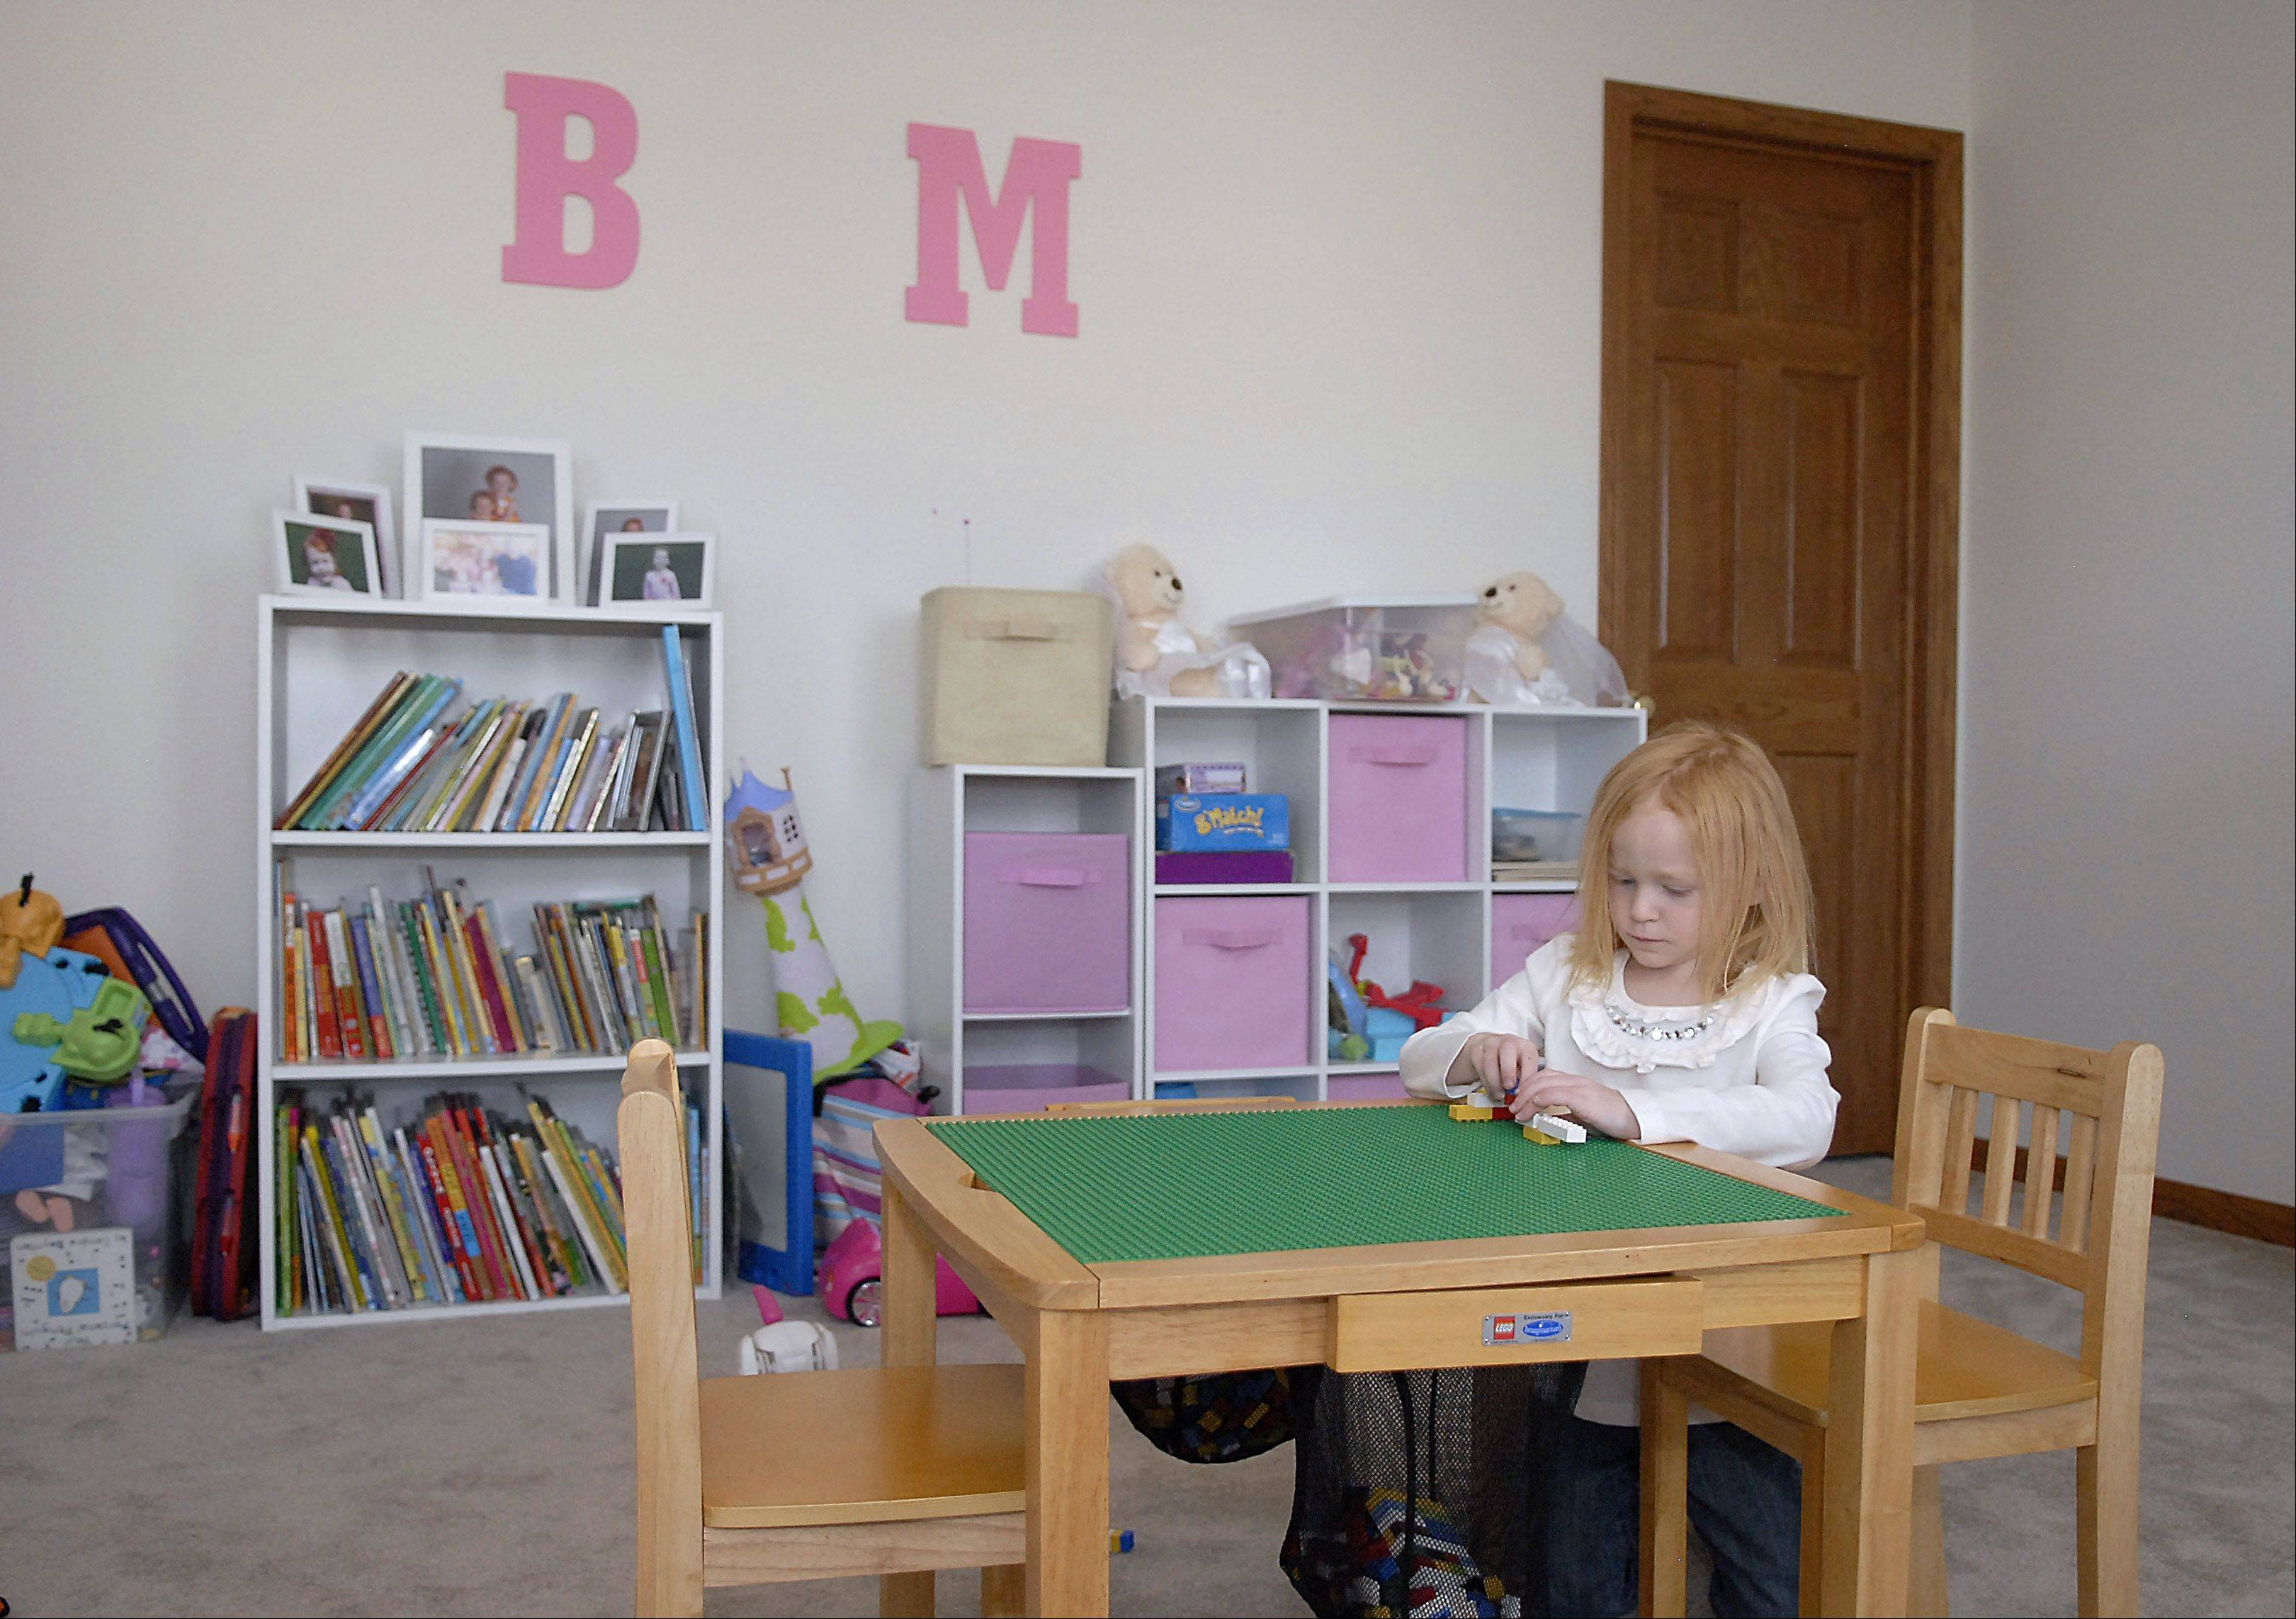 Madison Waller, 4, plays in an upstairs playroom she shares with sister Brooke in the family's new Pingree Grove home. The large playroom was a big plus for parents Kari and Todd Waller in selecting the house.